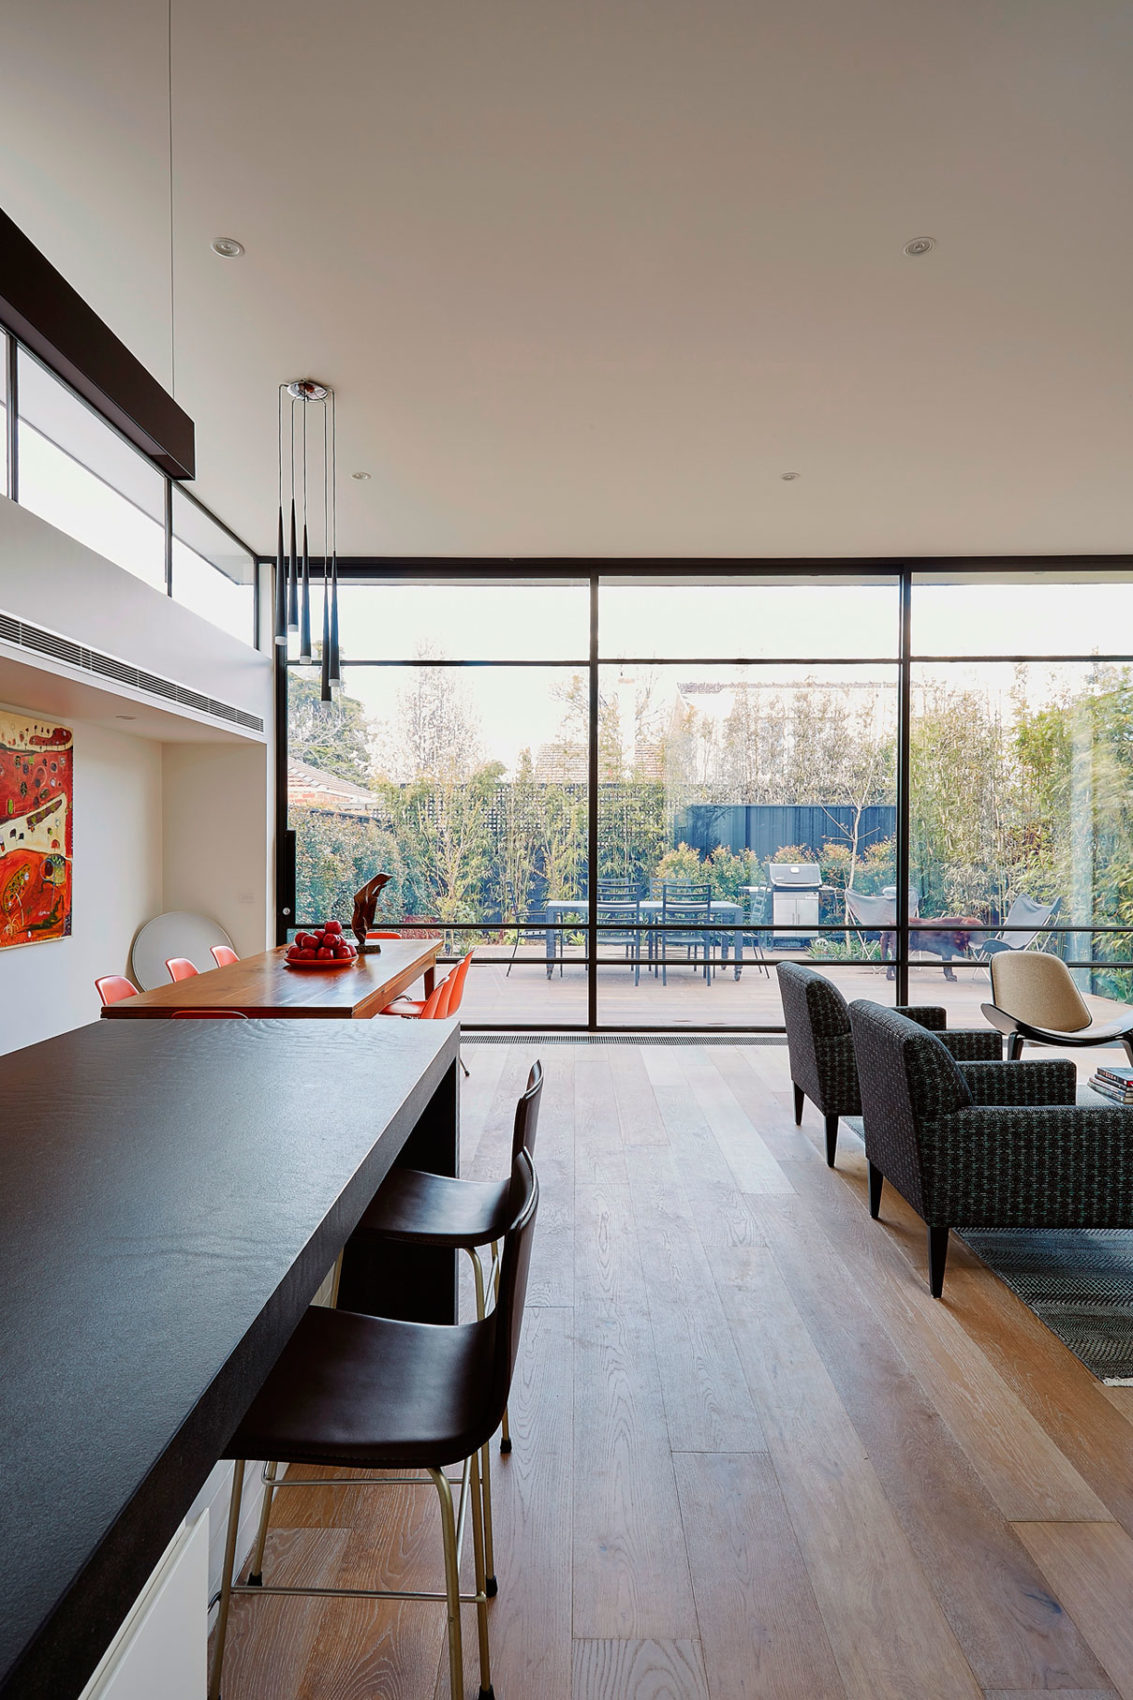 Malvern House by Patrick Jost (8)